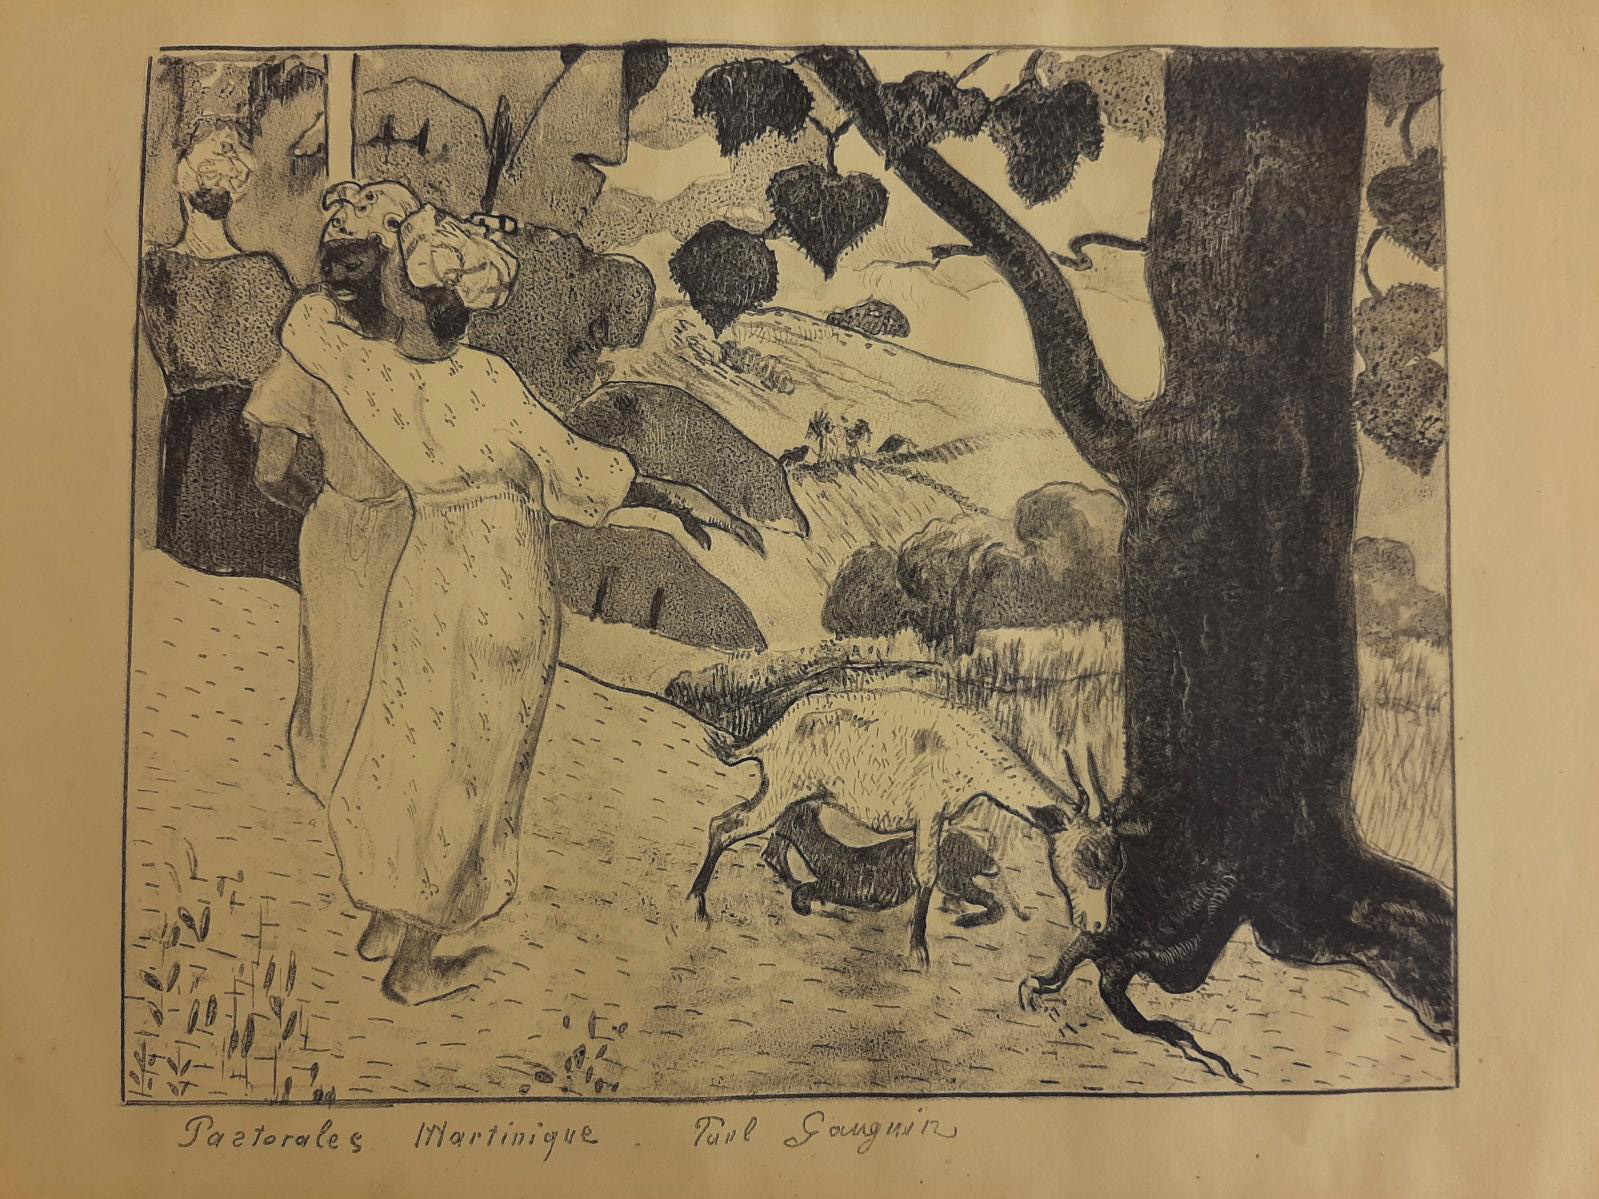 Paul Gauguin, Pastorales Martinique (Pastoral in Martinique), zincograph on yellow paper 1889, 31.5 x 49 cm (12.4 x 19.3 in).